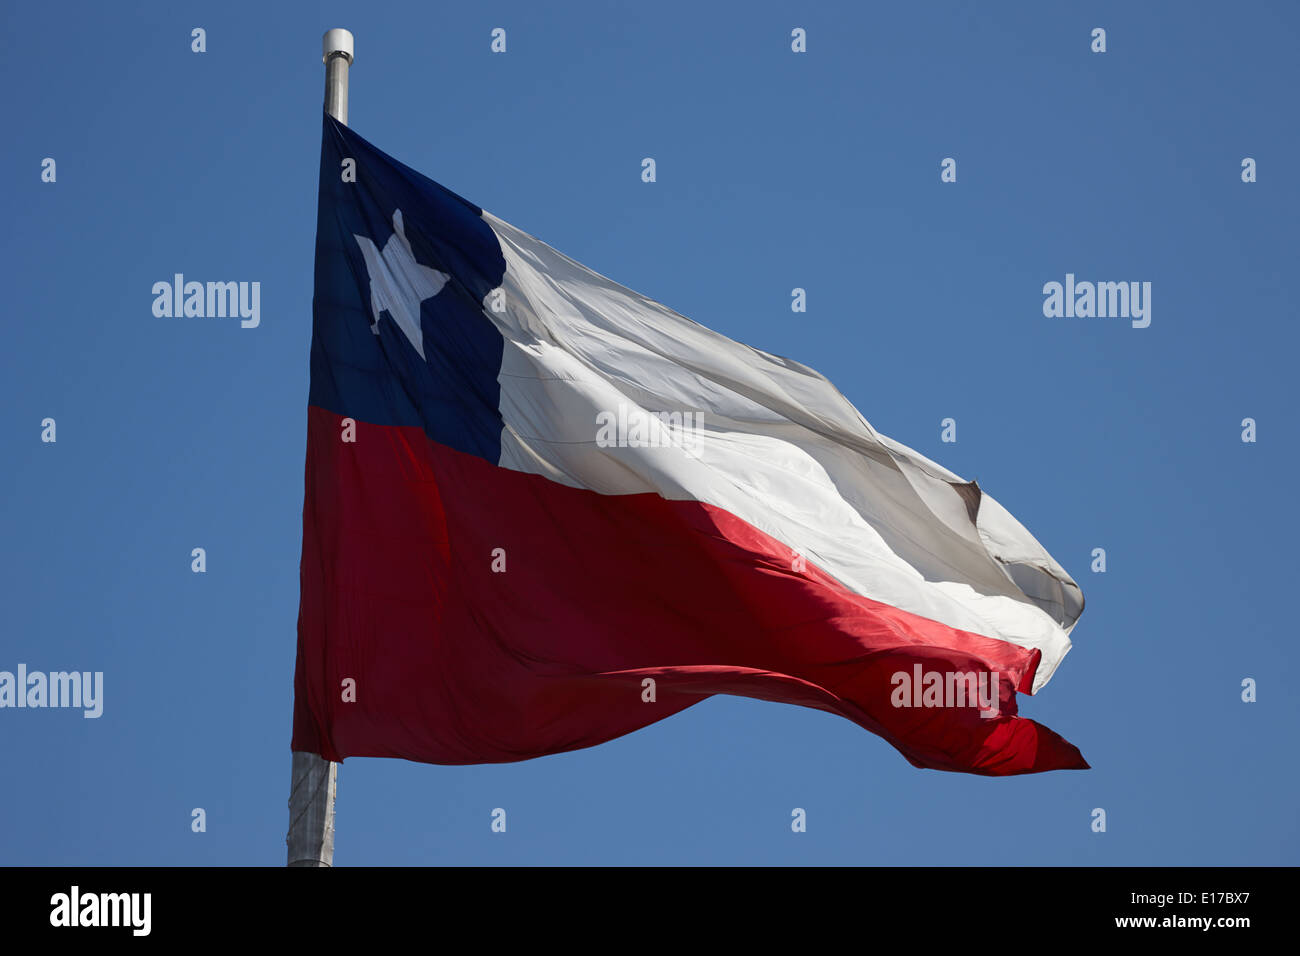 large bicentenary flag in citizens square Santiago Chile Stock Photo